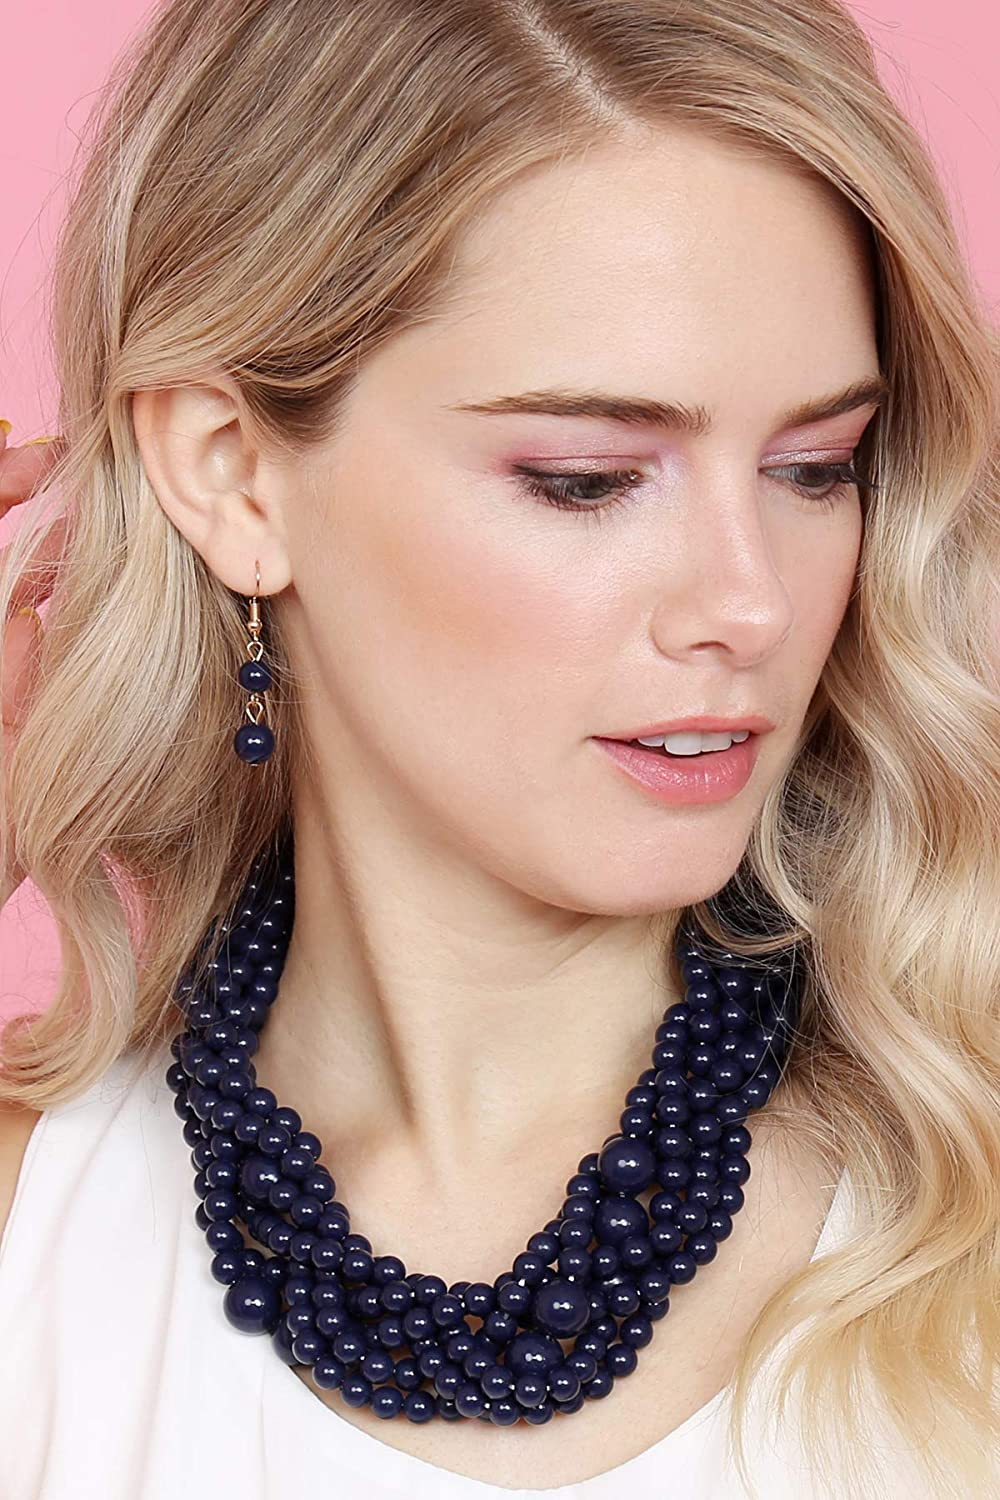 Sparkly Crystal RIAH FASHION Braided Chunky Cluster Bead Bubble Statement Necklace Multi Strand Twisted Colorful Twisted Ball Hammock Bib Collar Acrylic